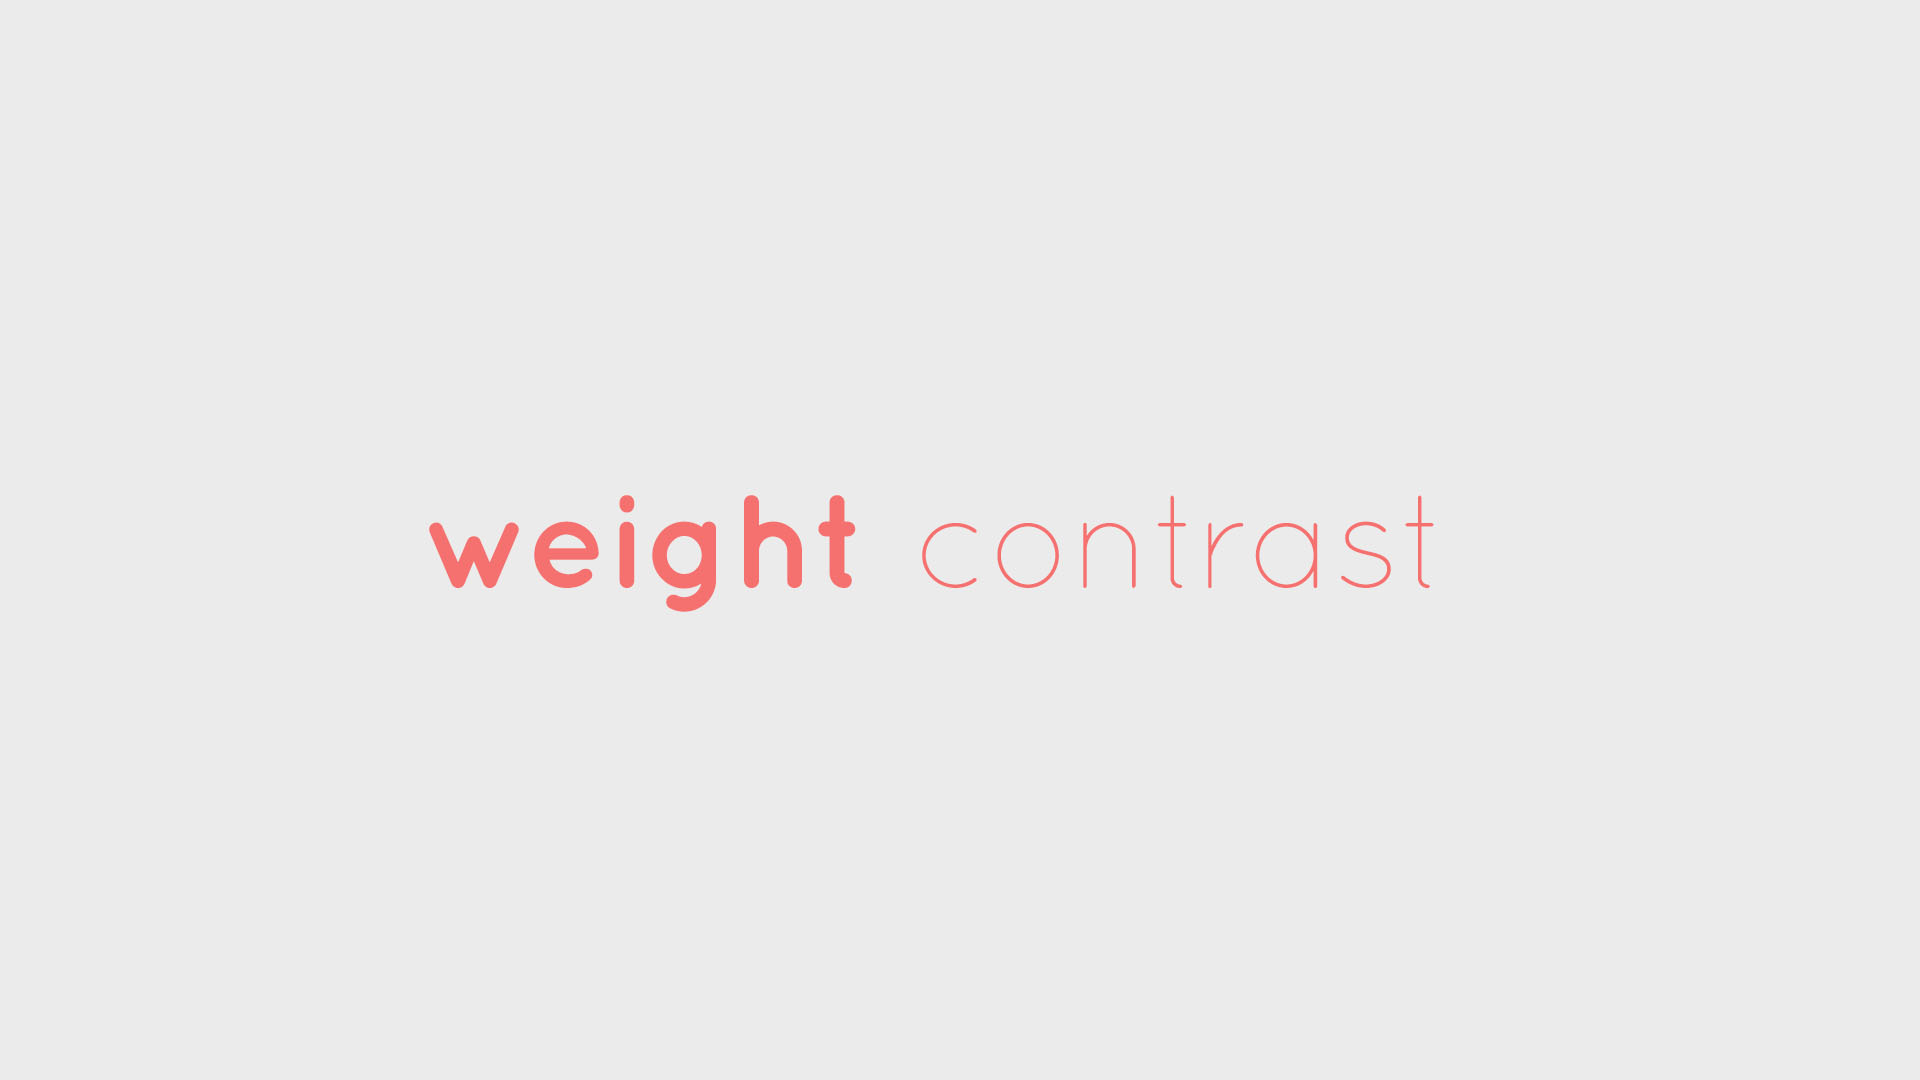 typography tips font weight